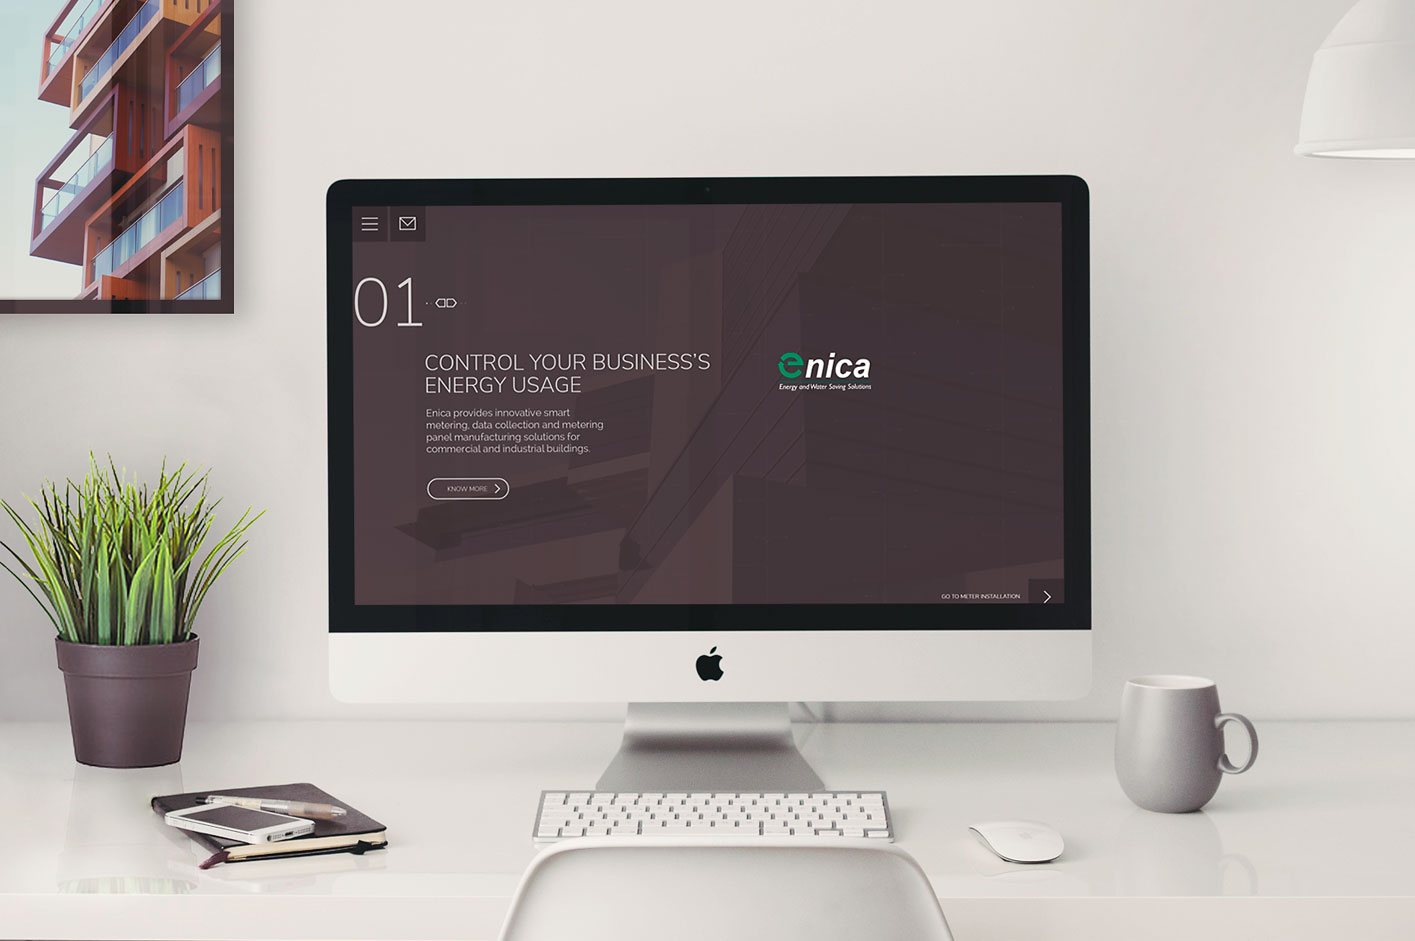 Enica web design on an iMac